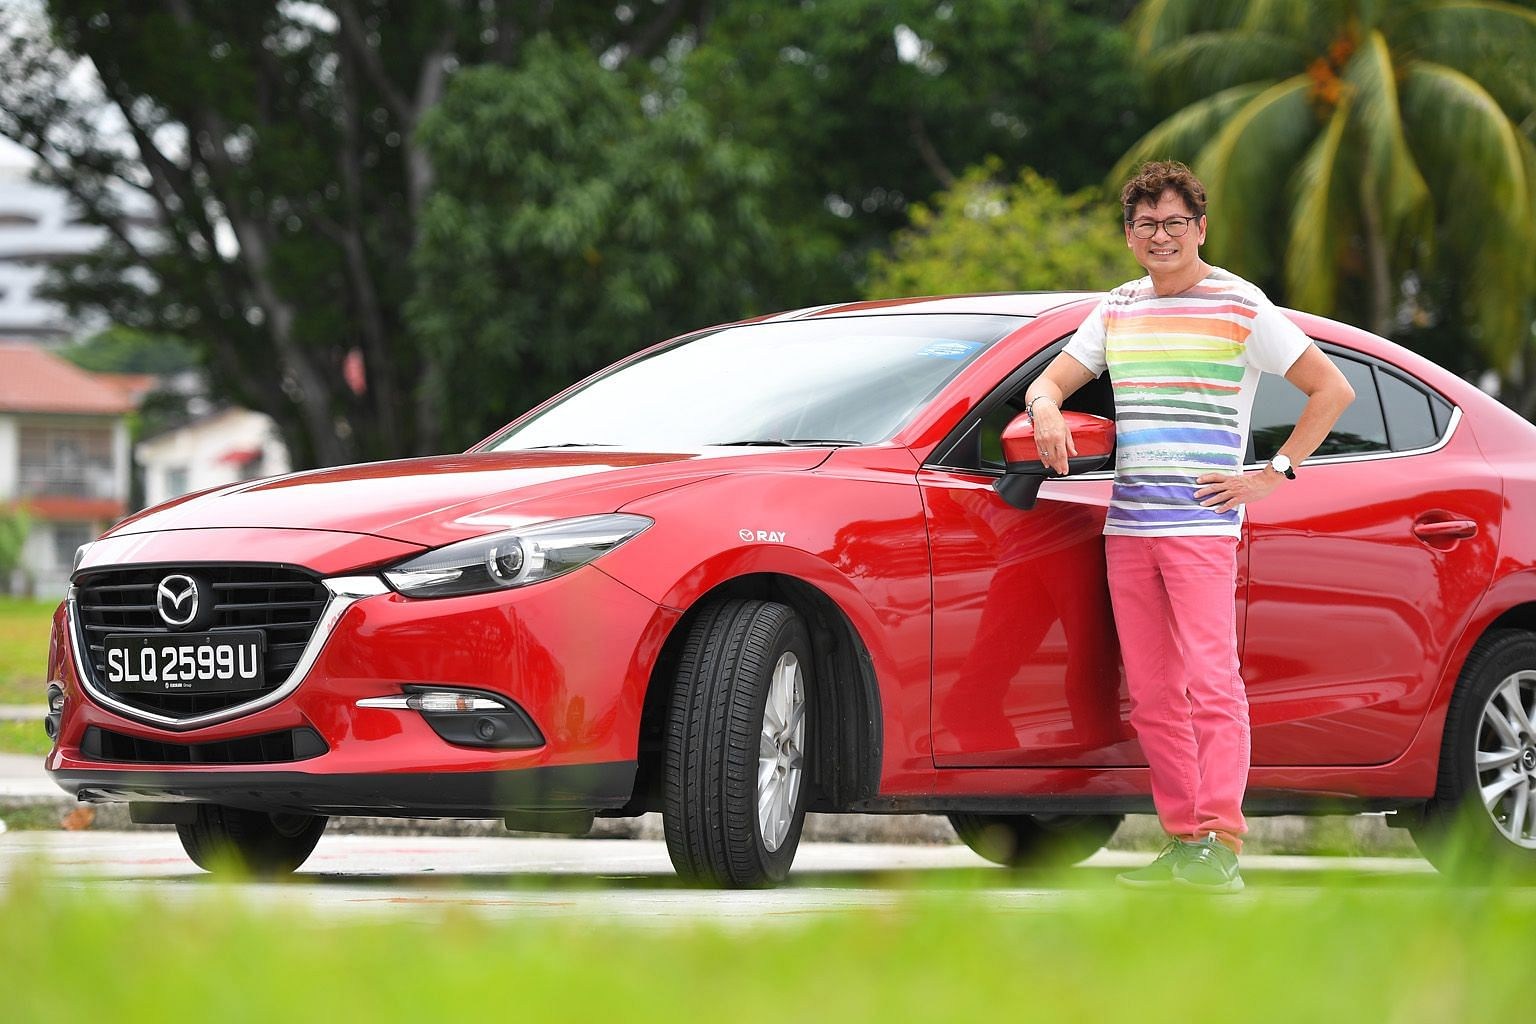 Mr Raymond Leong, who was laid off from his job as a senior sales manager at a cruise and events company in February, is now working as a Grab driver as he continues to search for job opportunities. With more than 30 years in the tourism and travel i